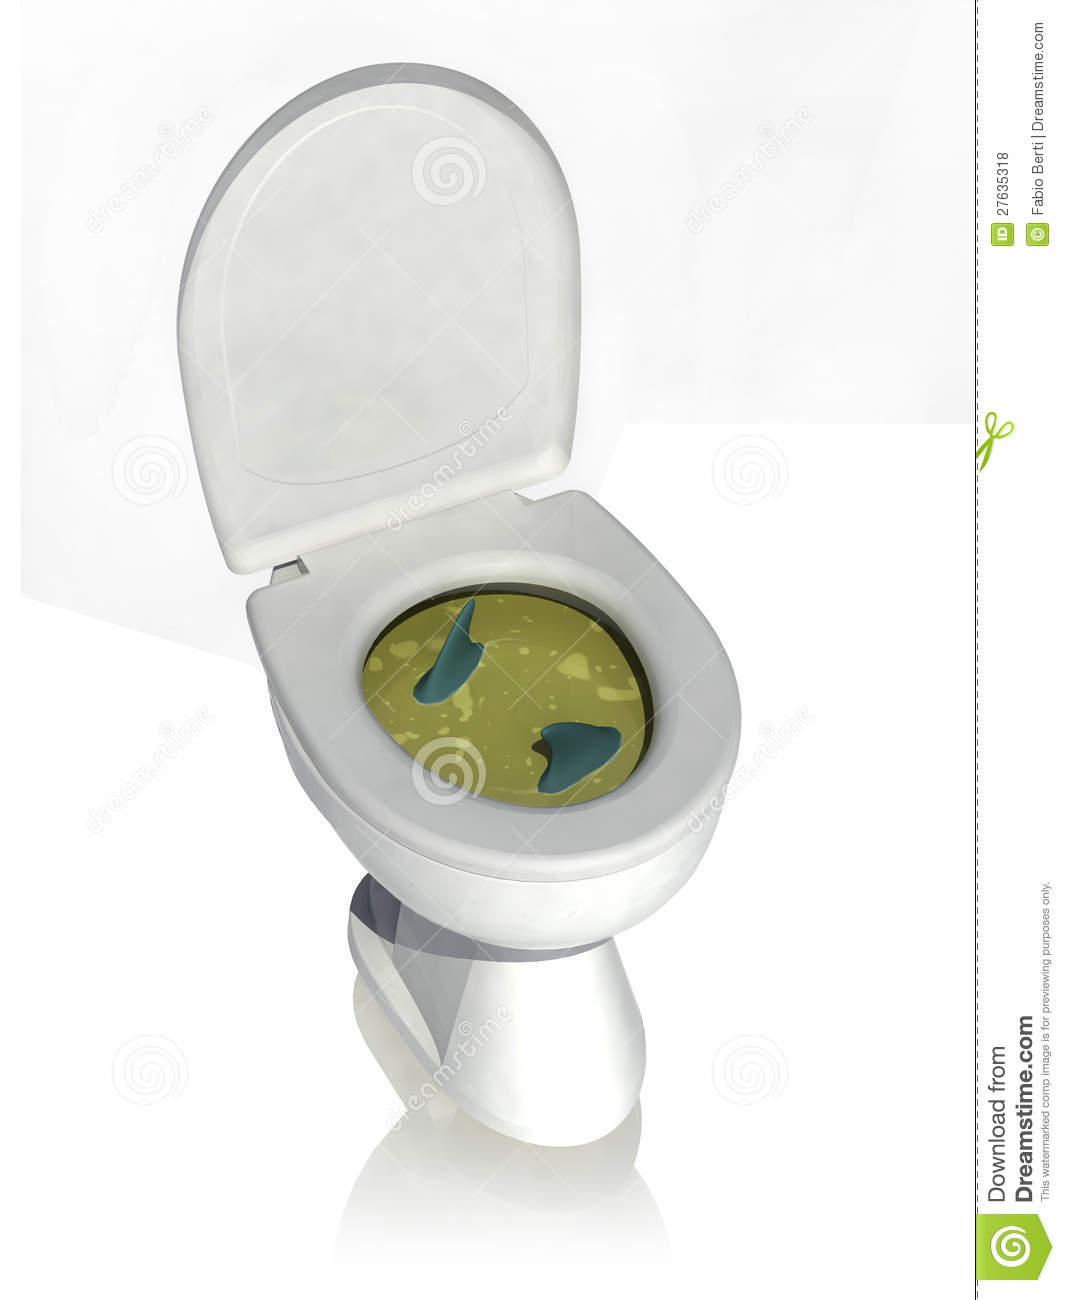 Dirty Toilet Royalty Free Stock Photos - Image: 27635318